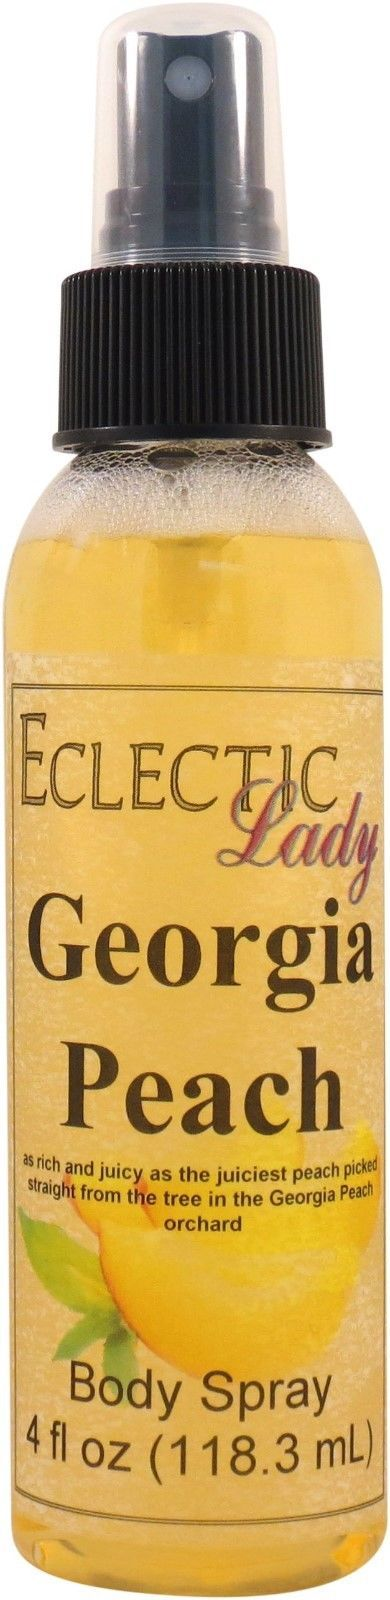 Georgia Peach Body Spray, 4 oz